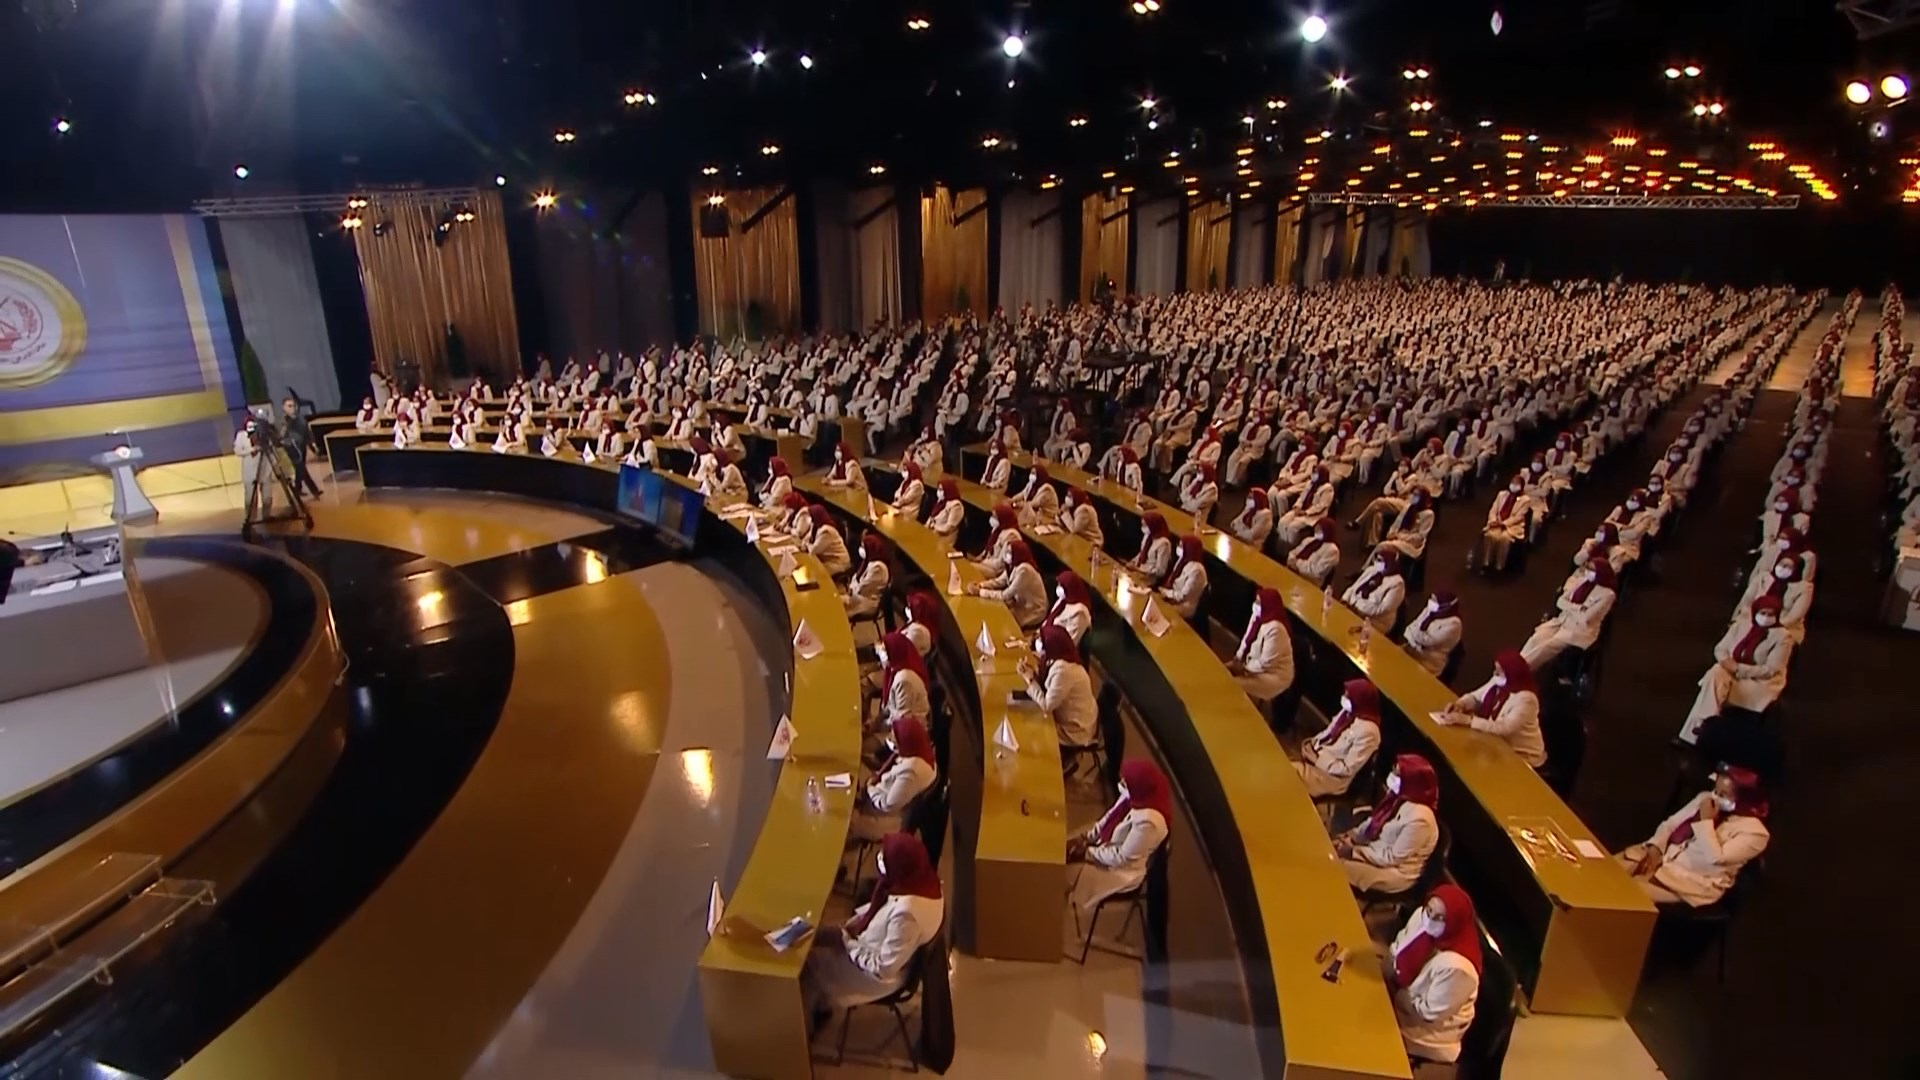 Grand gathering marking the 57th year of the PMOI's foundation